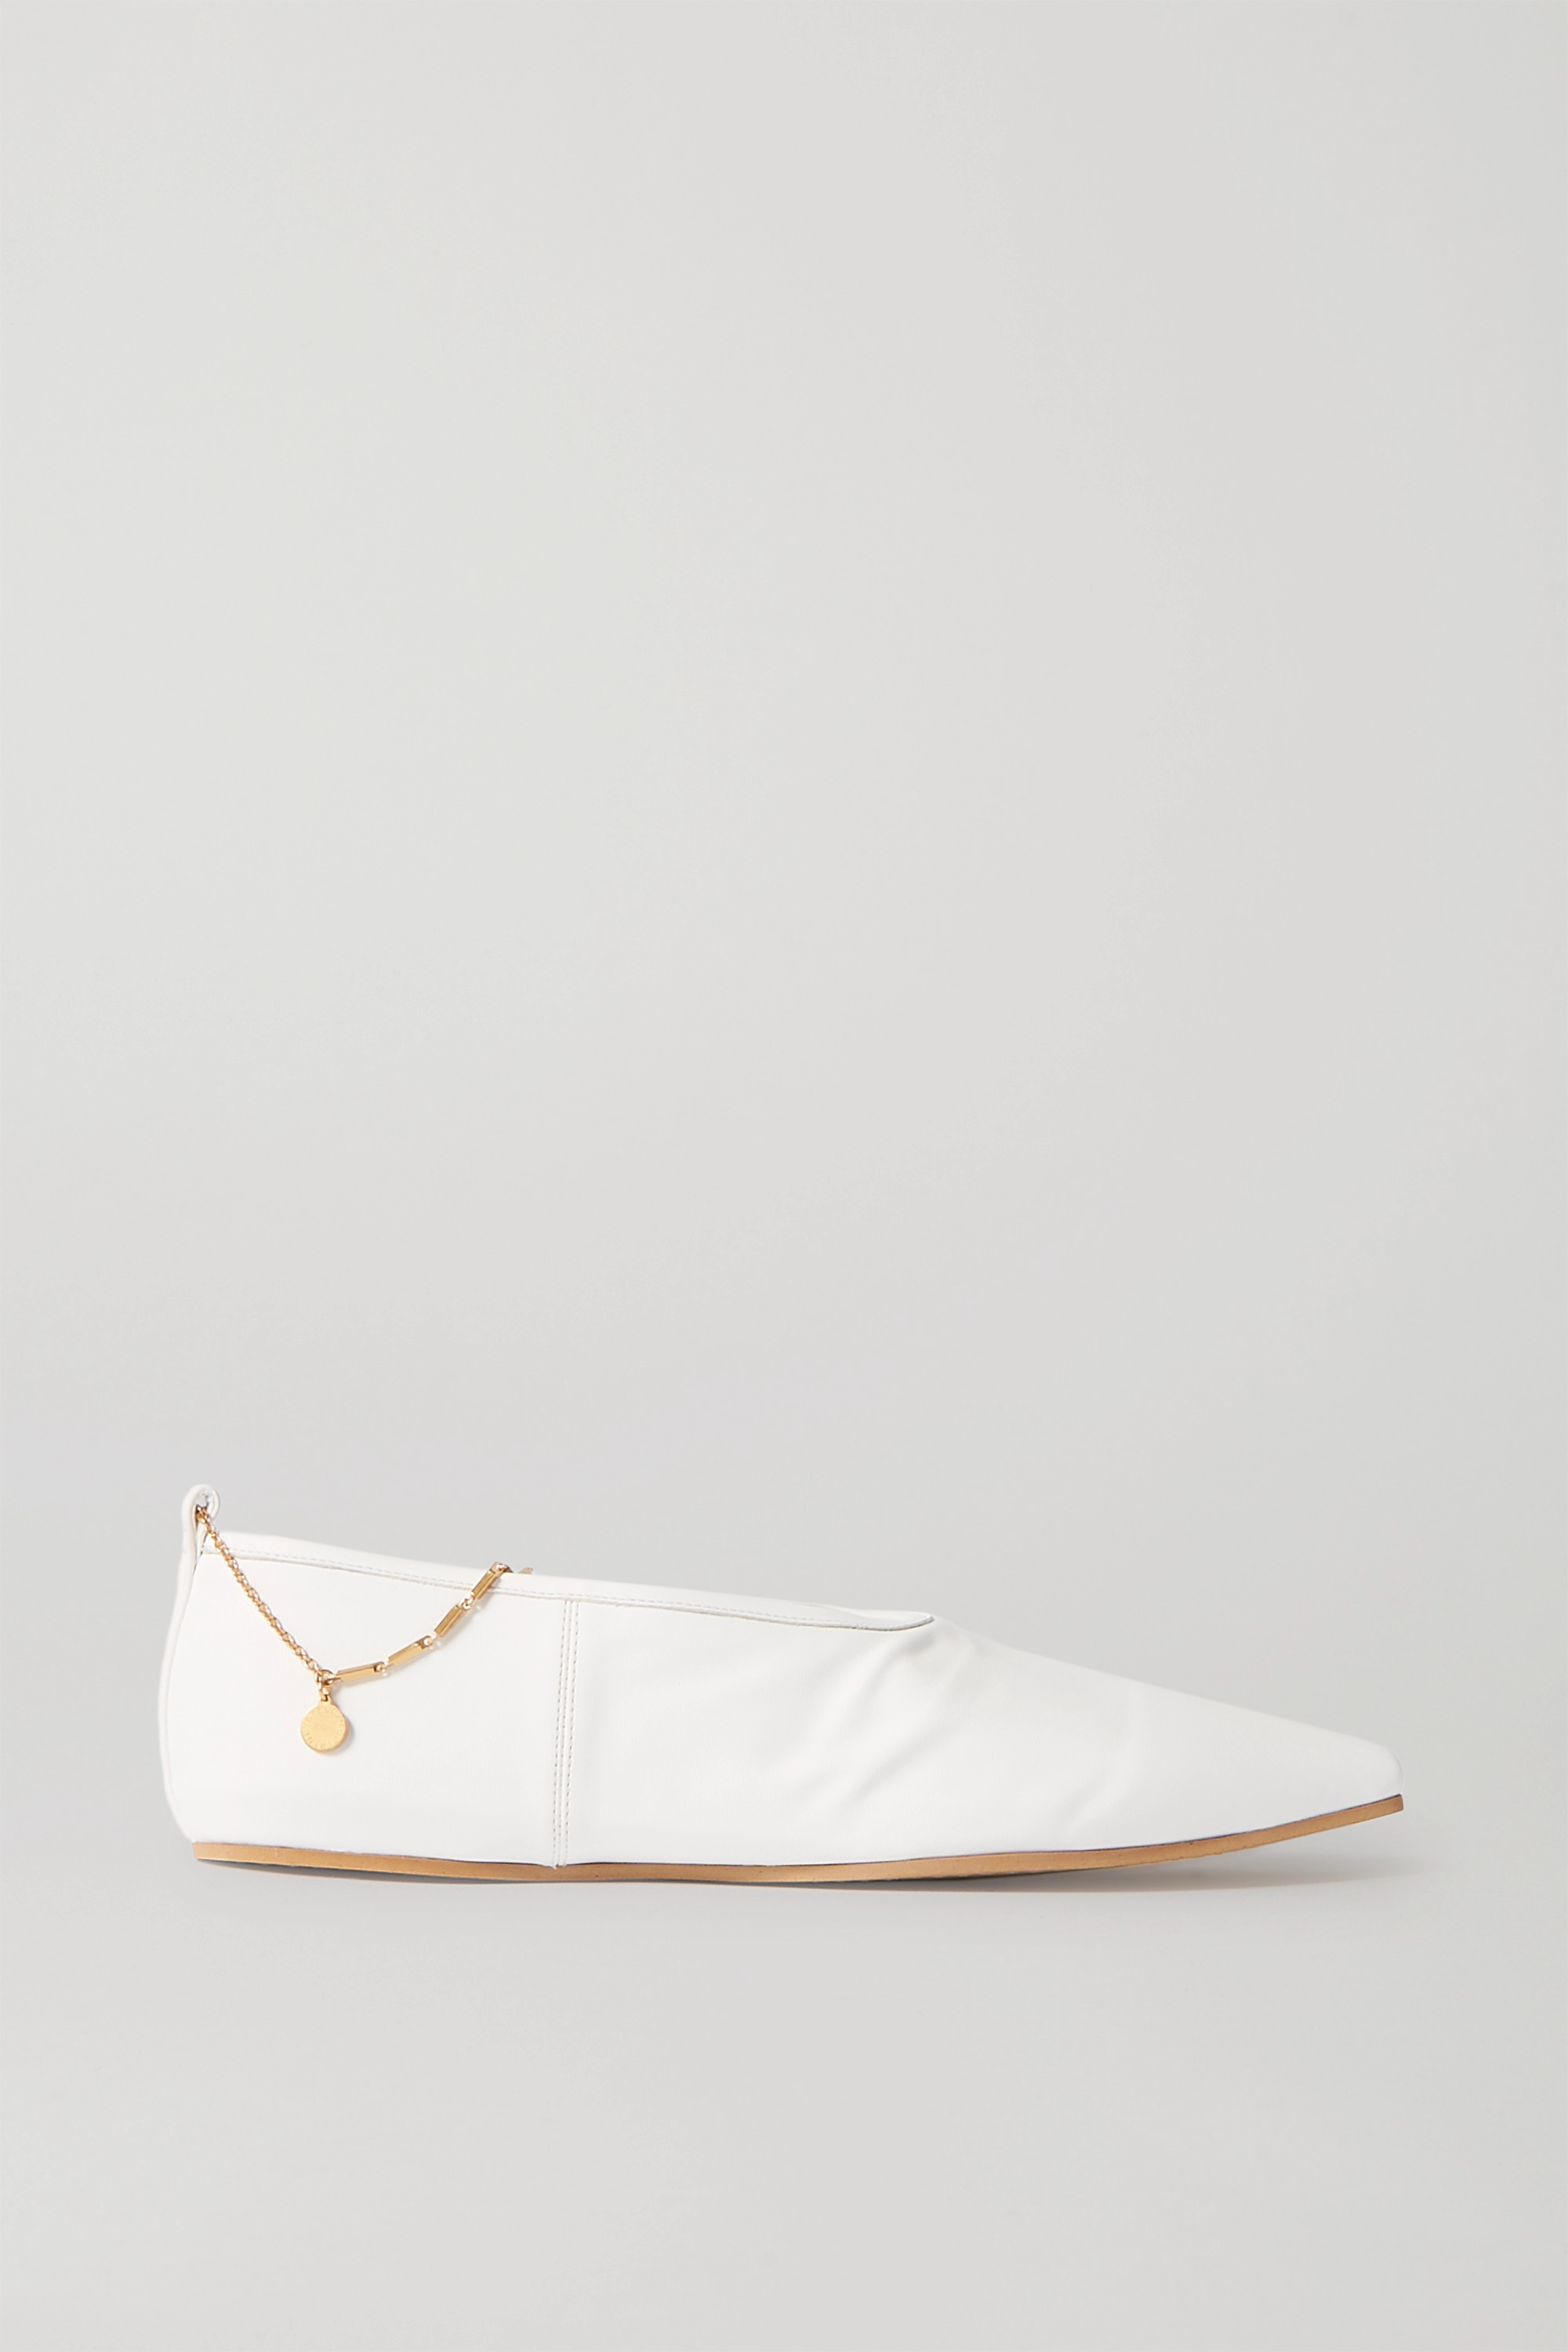 Stella McCartney Chain-embellished vegetarian leather point-toe flats